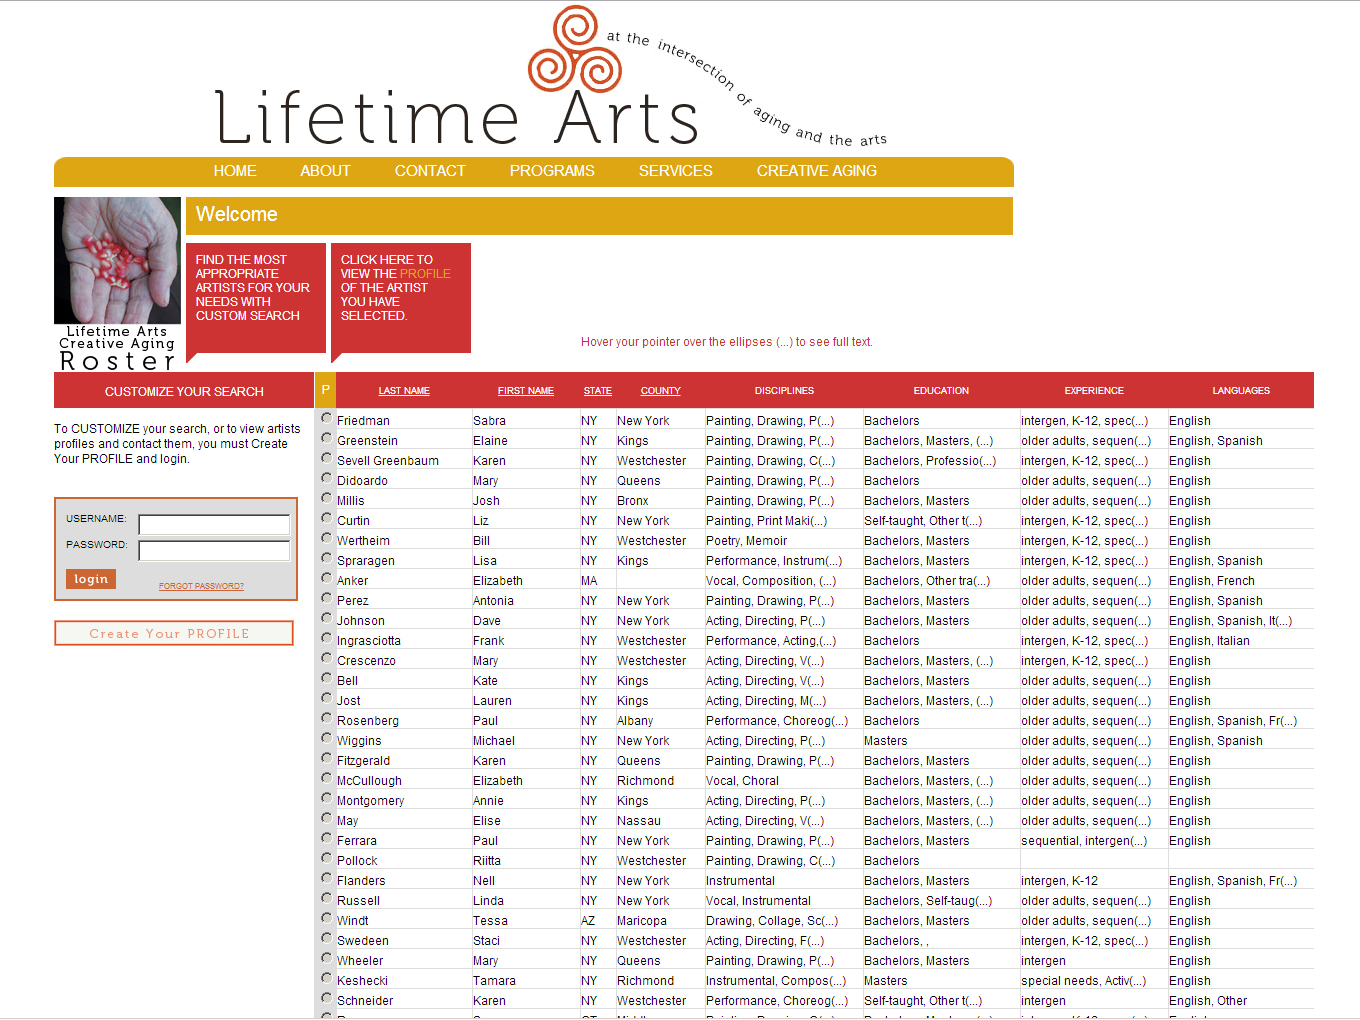 Screenshot of the Creative Aging Roster